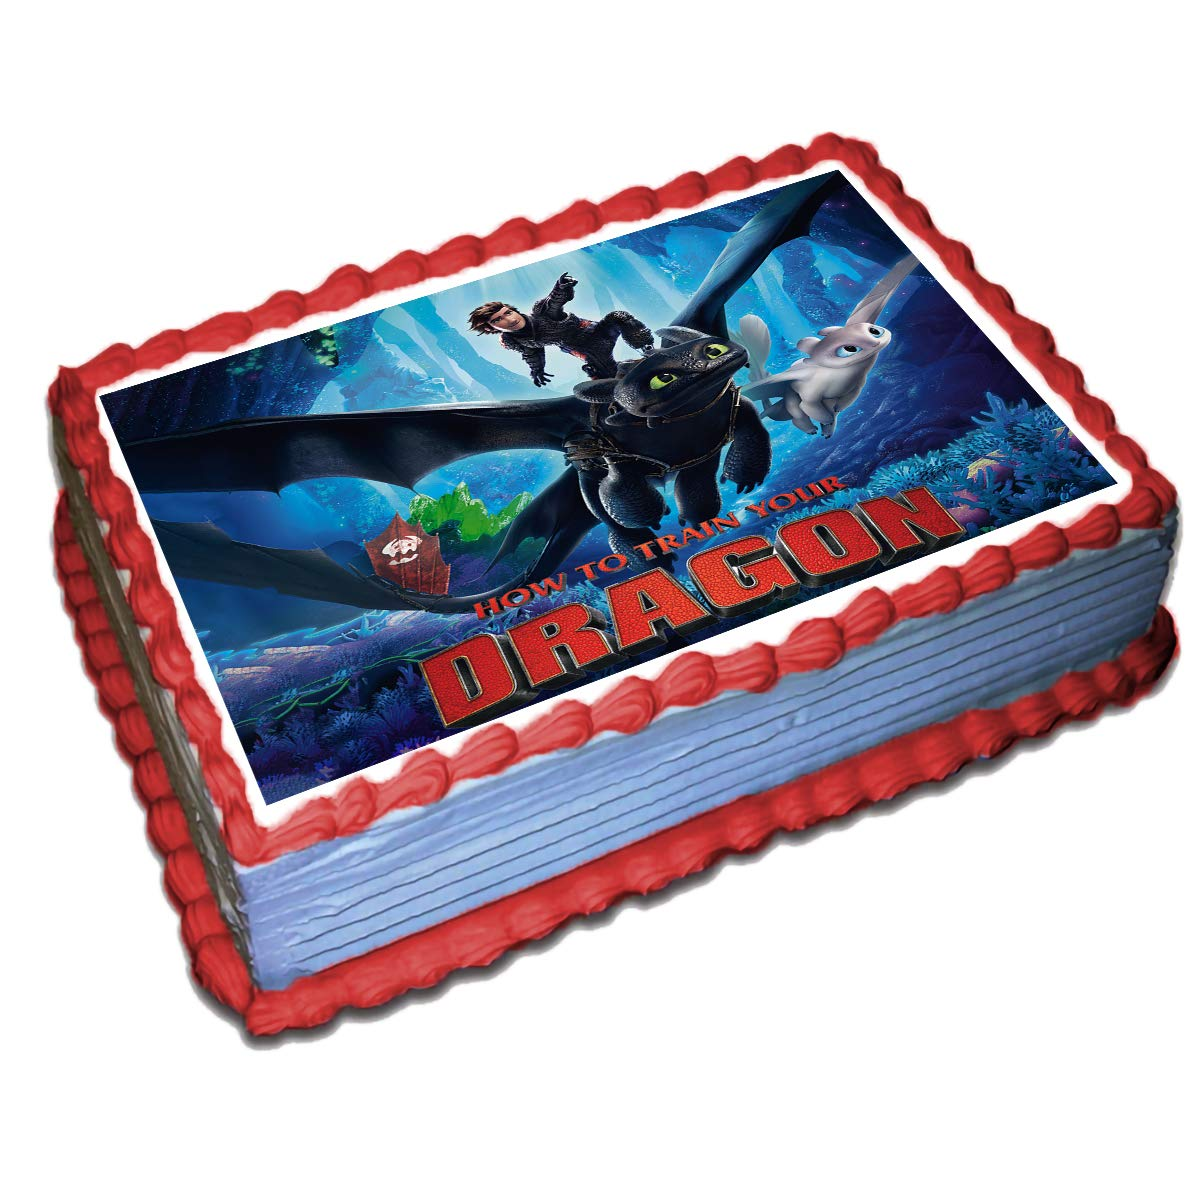 Tremendous How To Train Your Dragon 3 Cake Toppers Icing Sugar Paper 8 5 X Personalised Birthday Cards Veneteletsinfo